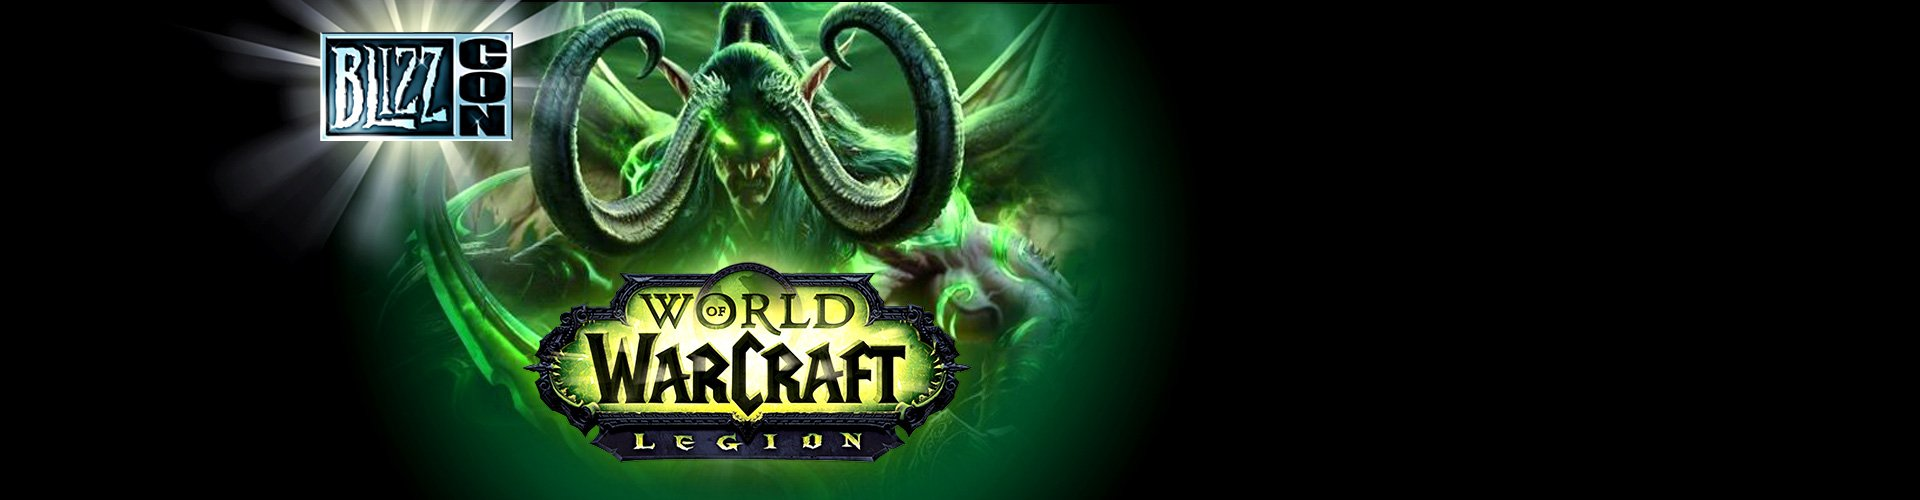 BlizzCon 2015 - Liveticker zum BlizzCon-Panel von WoW: Legion